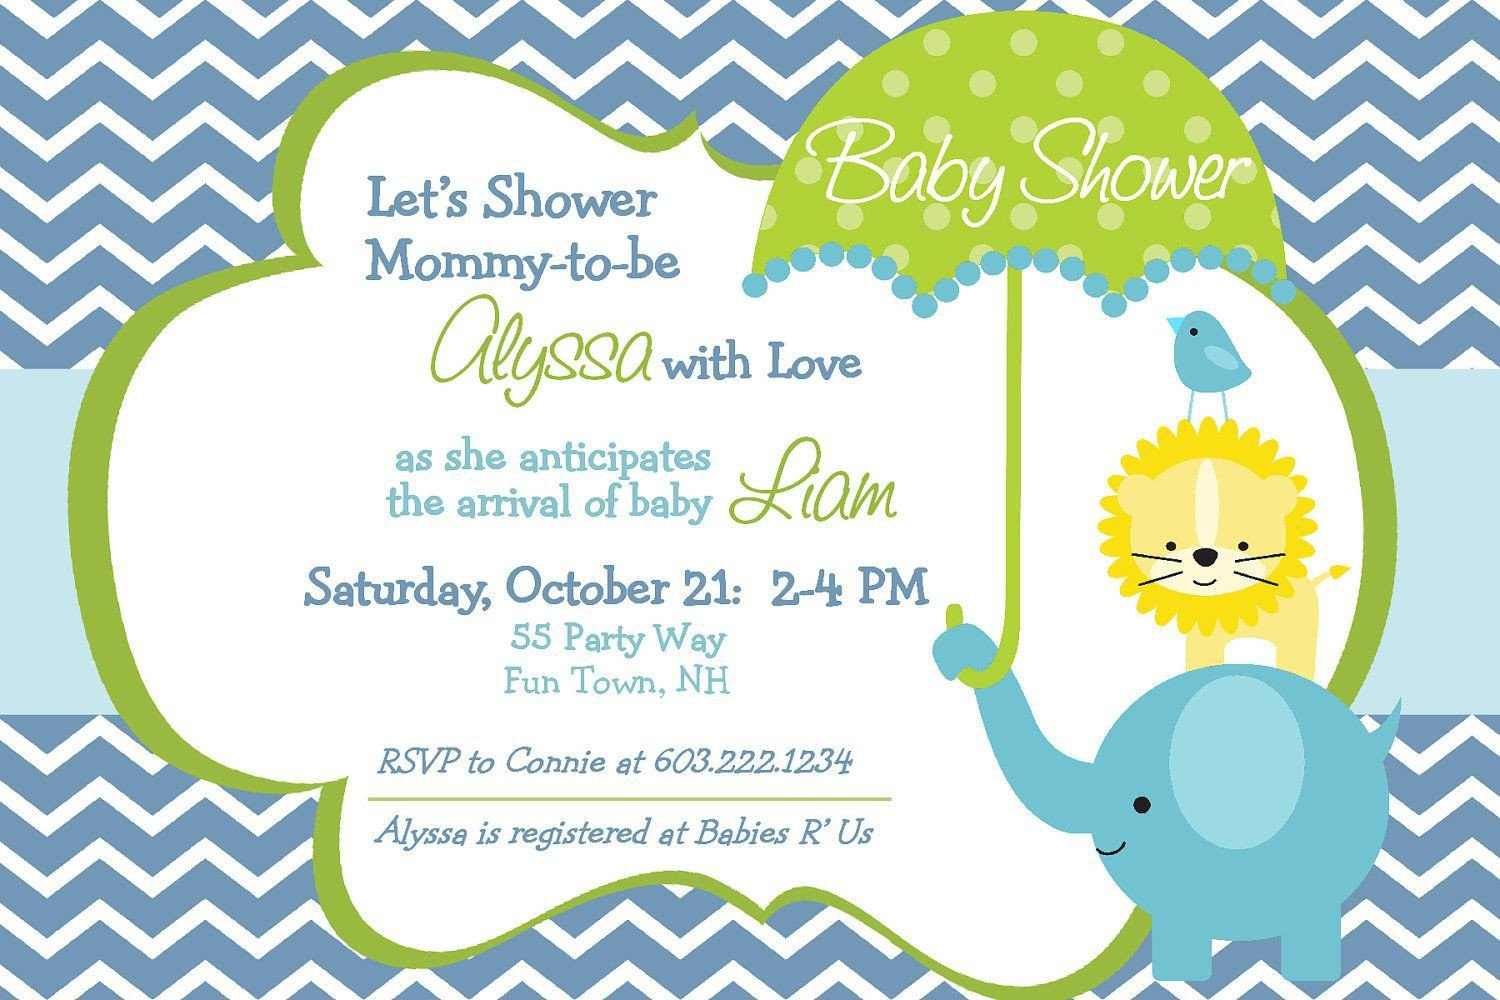 Baby Shower Invite Templates Baby Shower Invitation Templates Baby Shower Invitation